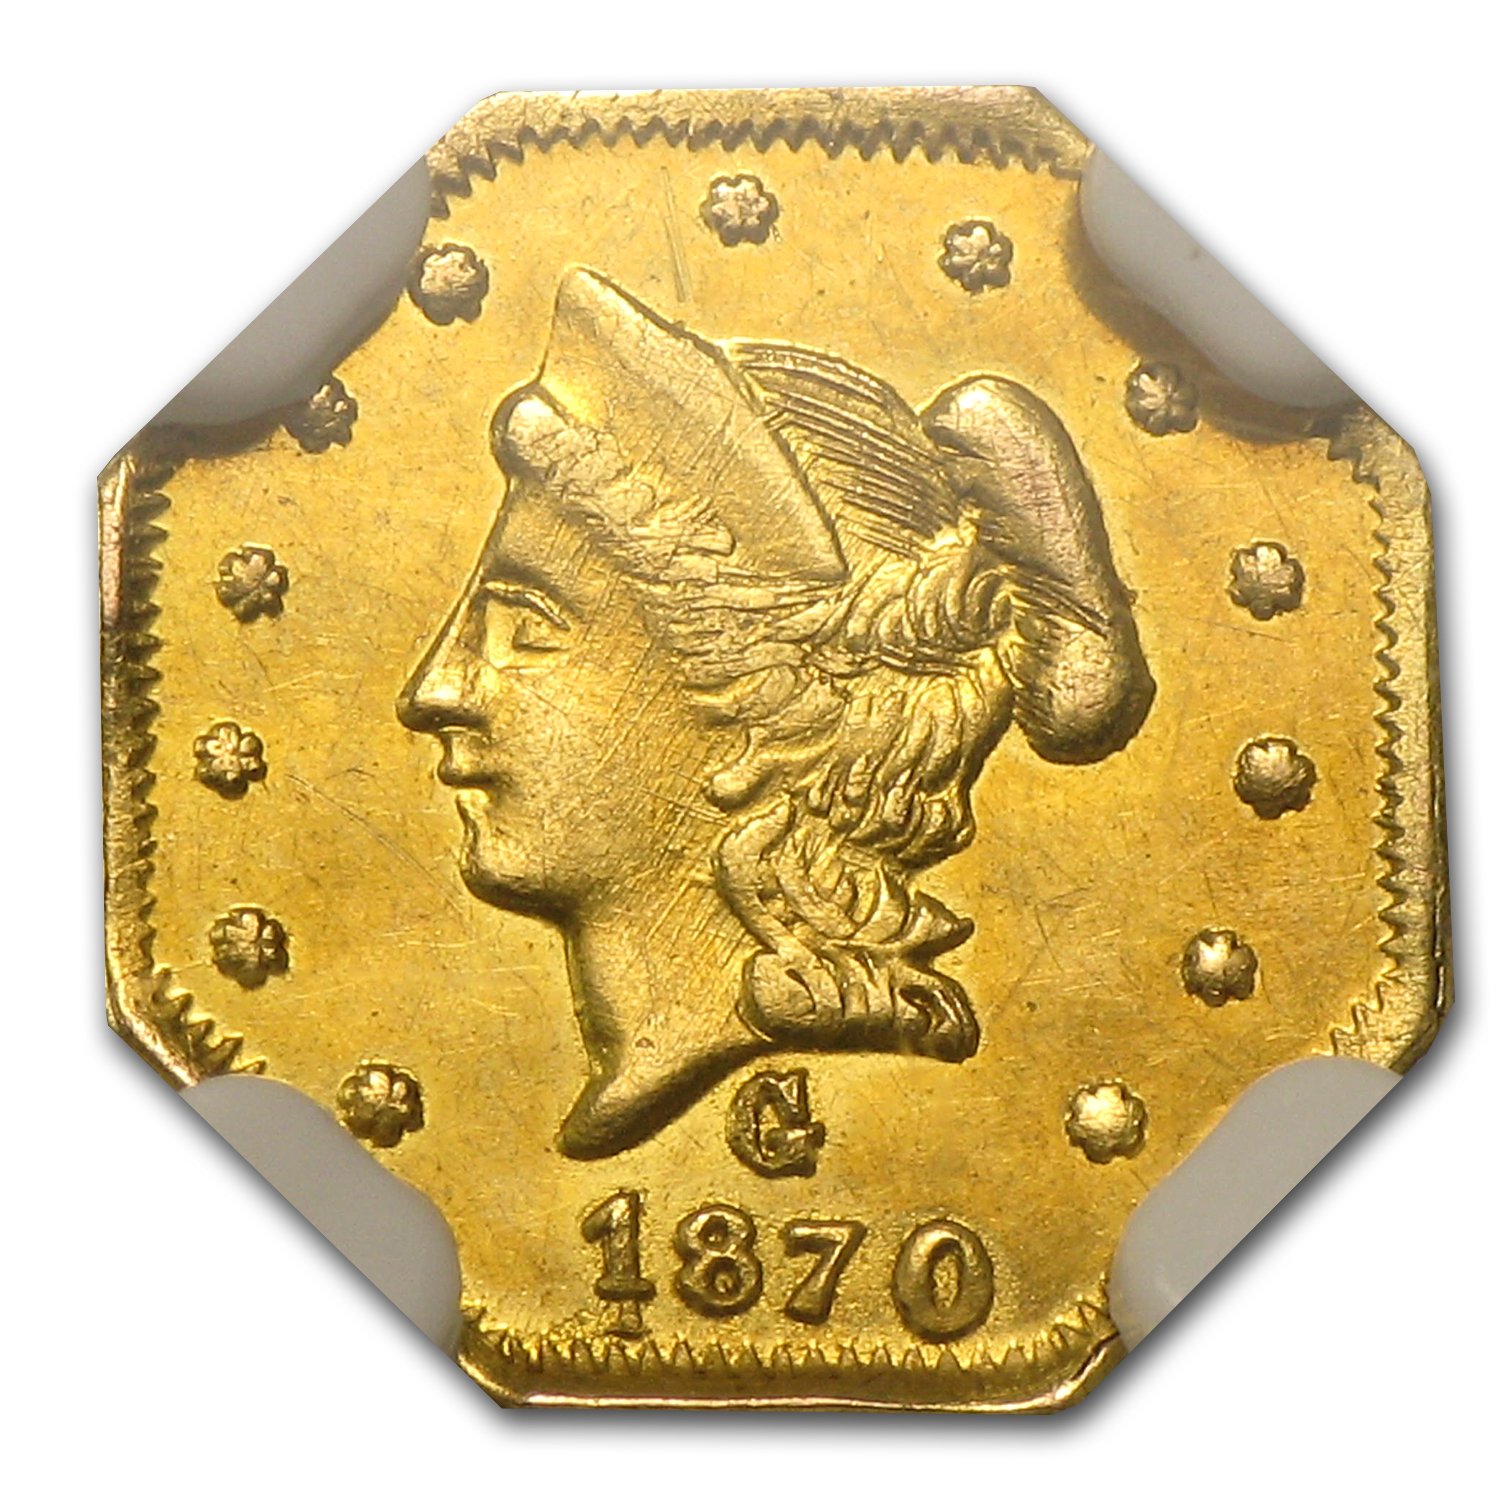 1870 BG-922 Liberty Octagonal 50 Cent Gold UNC NGC (Scratches)